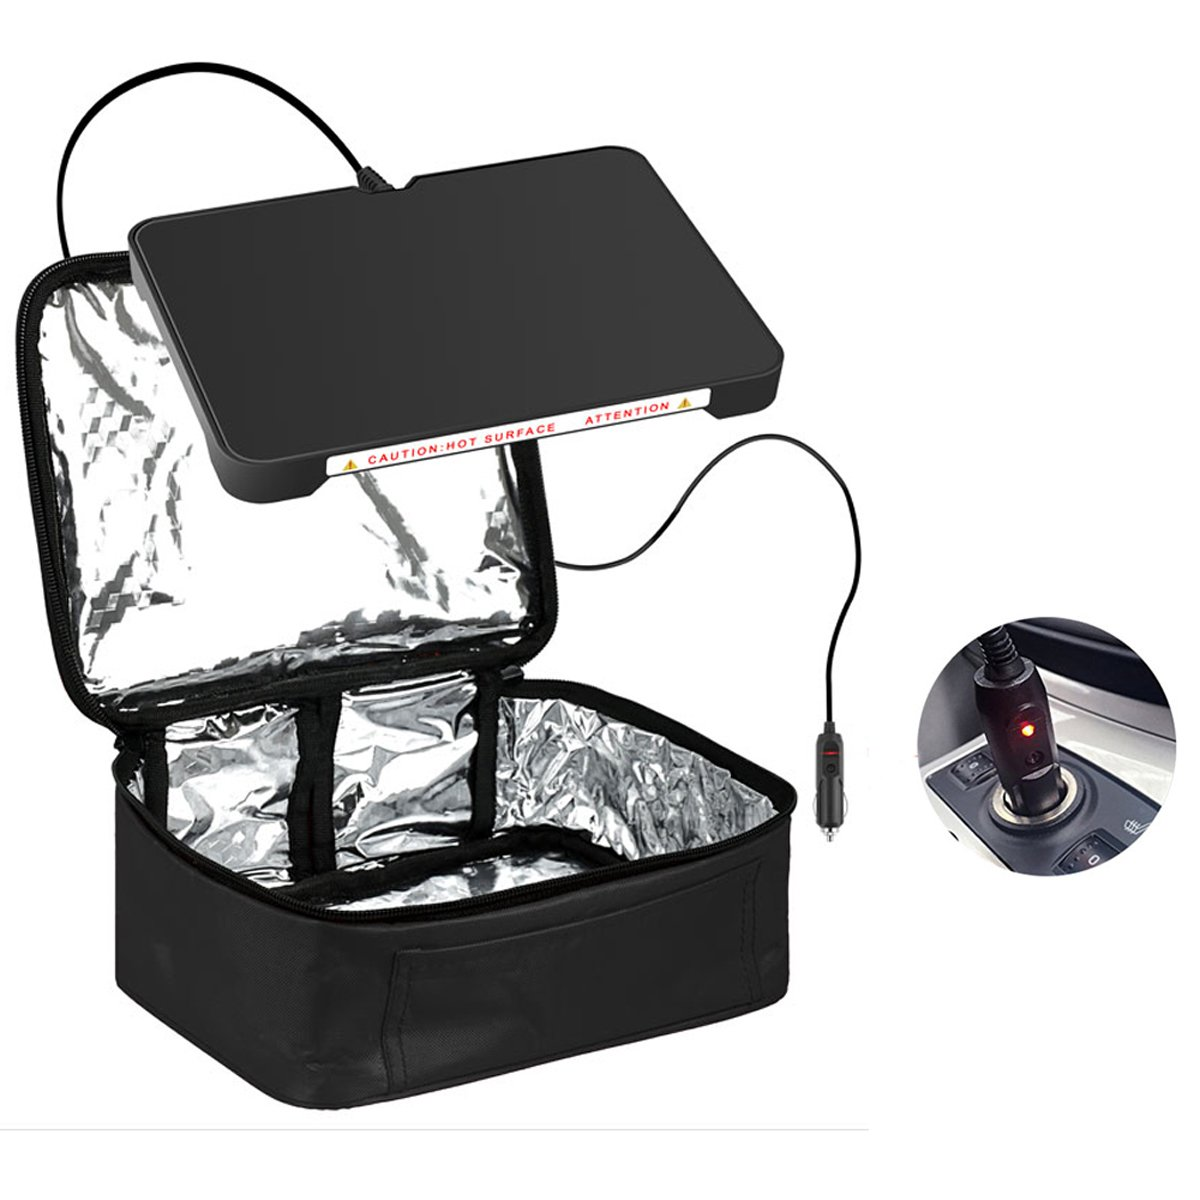 Food Warmer Personal Portable Mini Oven Electric Lunch Warmer for 12V Car,Truckers,Outdoors Travel, Camping,Black yiboss mini